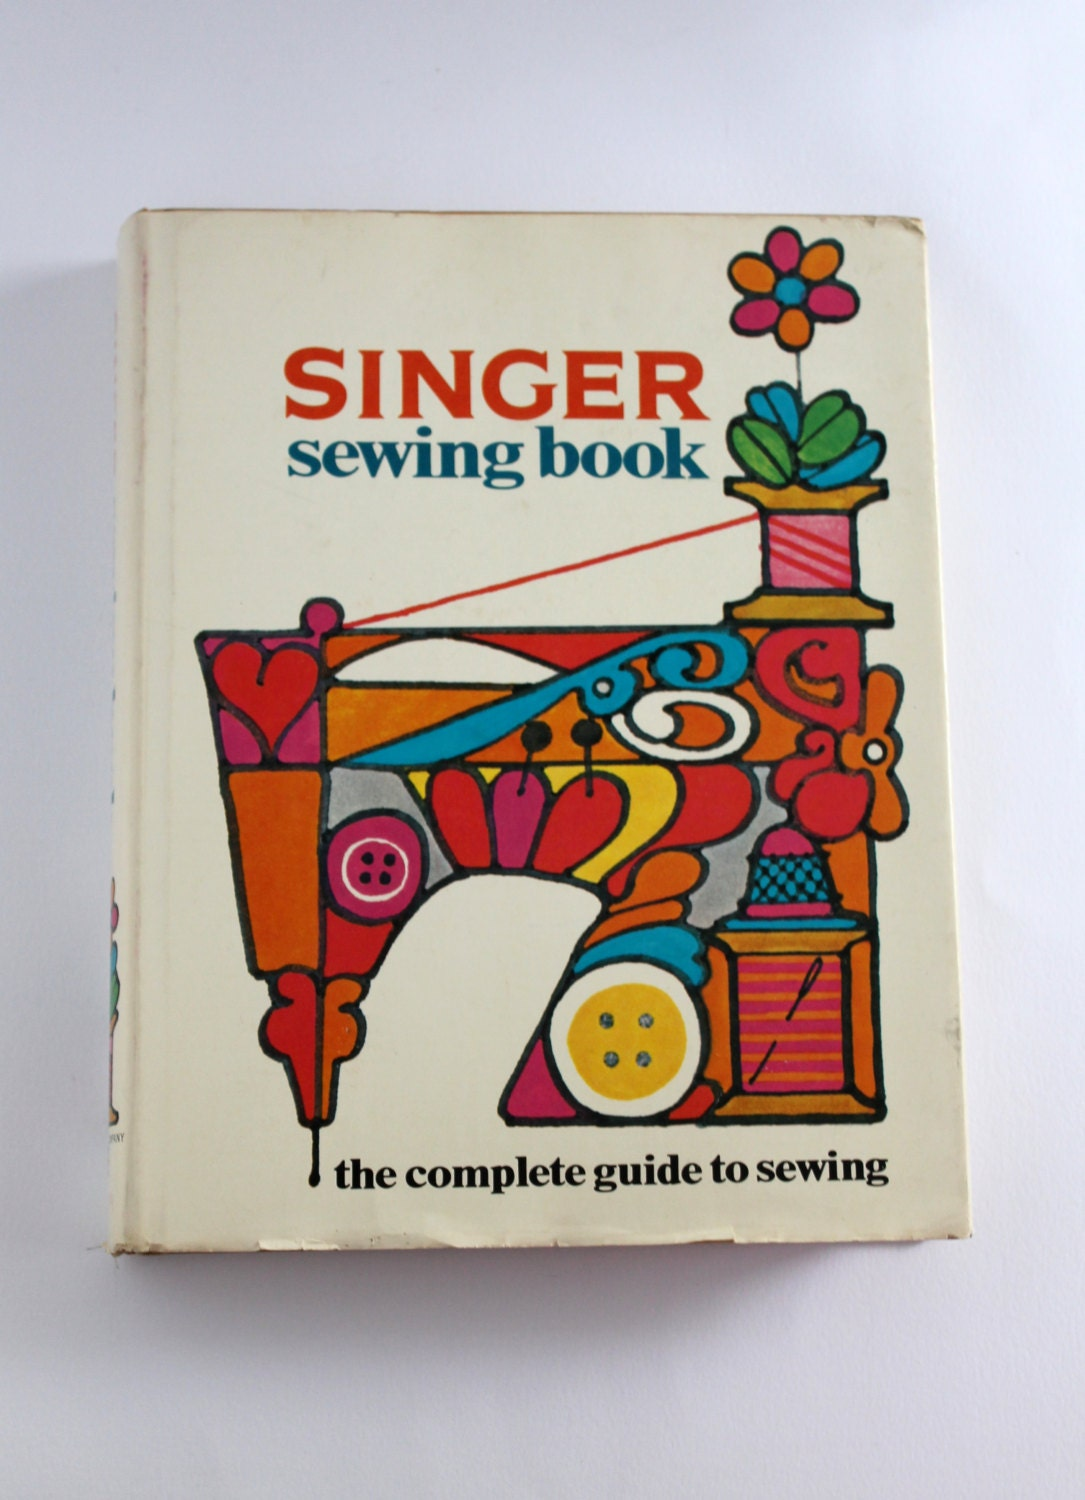 Book Cover Sewing Guide : Singer sewing book the complete guide to by lifesayoyo